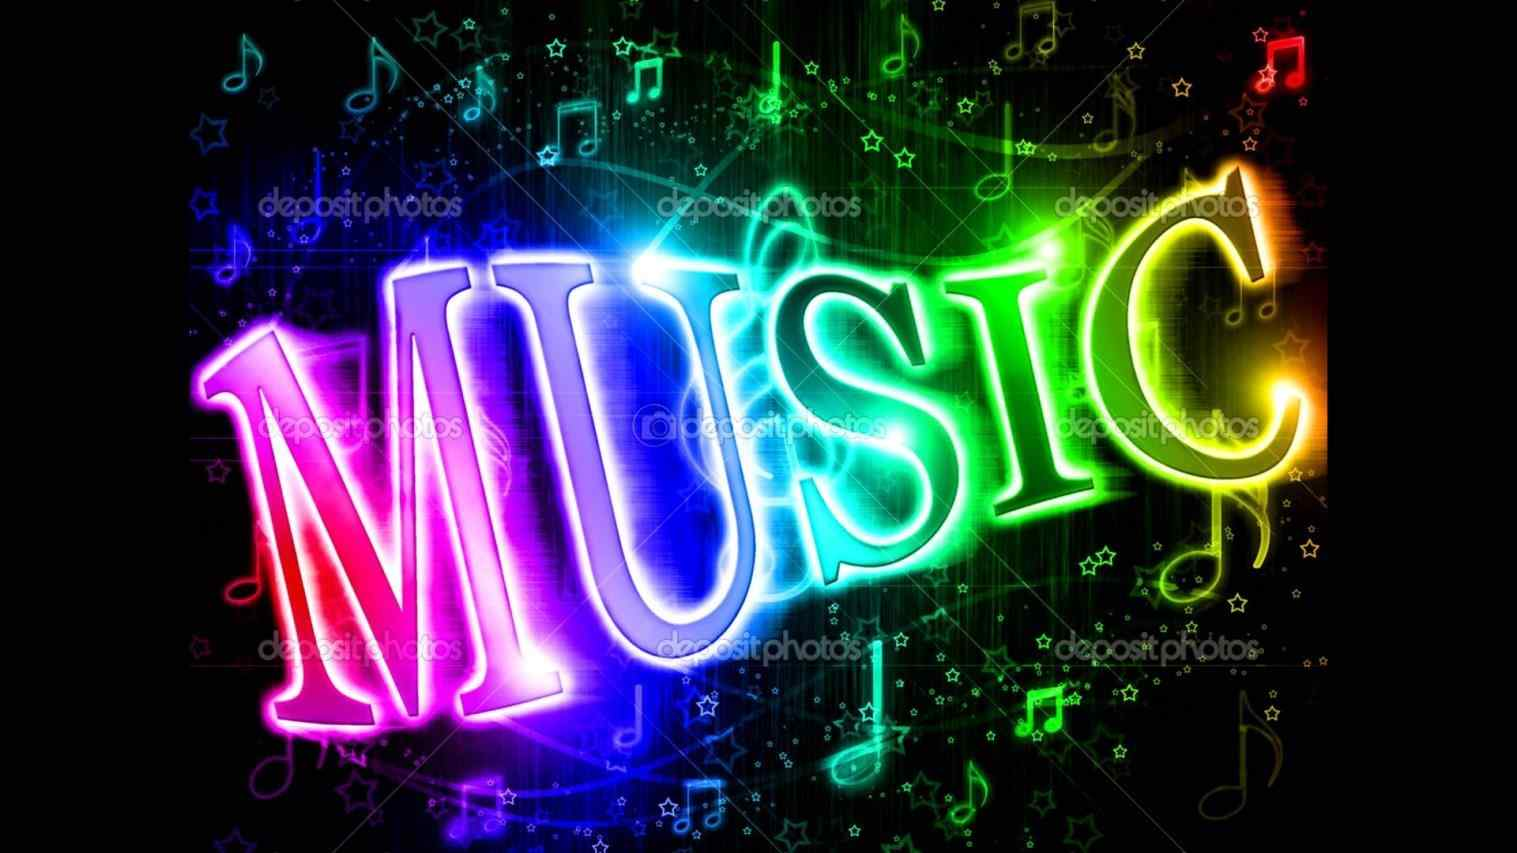 Music Best Hd Cool Neon Backgrounds Free Dj Wallpapers Cool Pictures Of Music 1517x853 Wallpaper Teahub Io